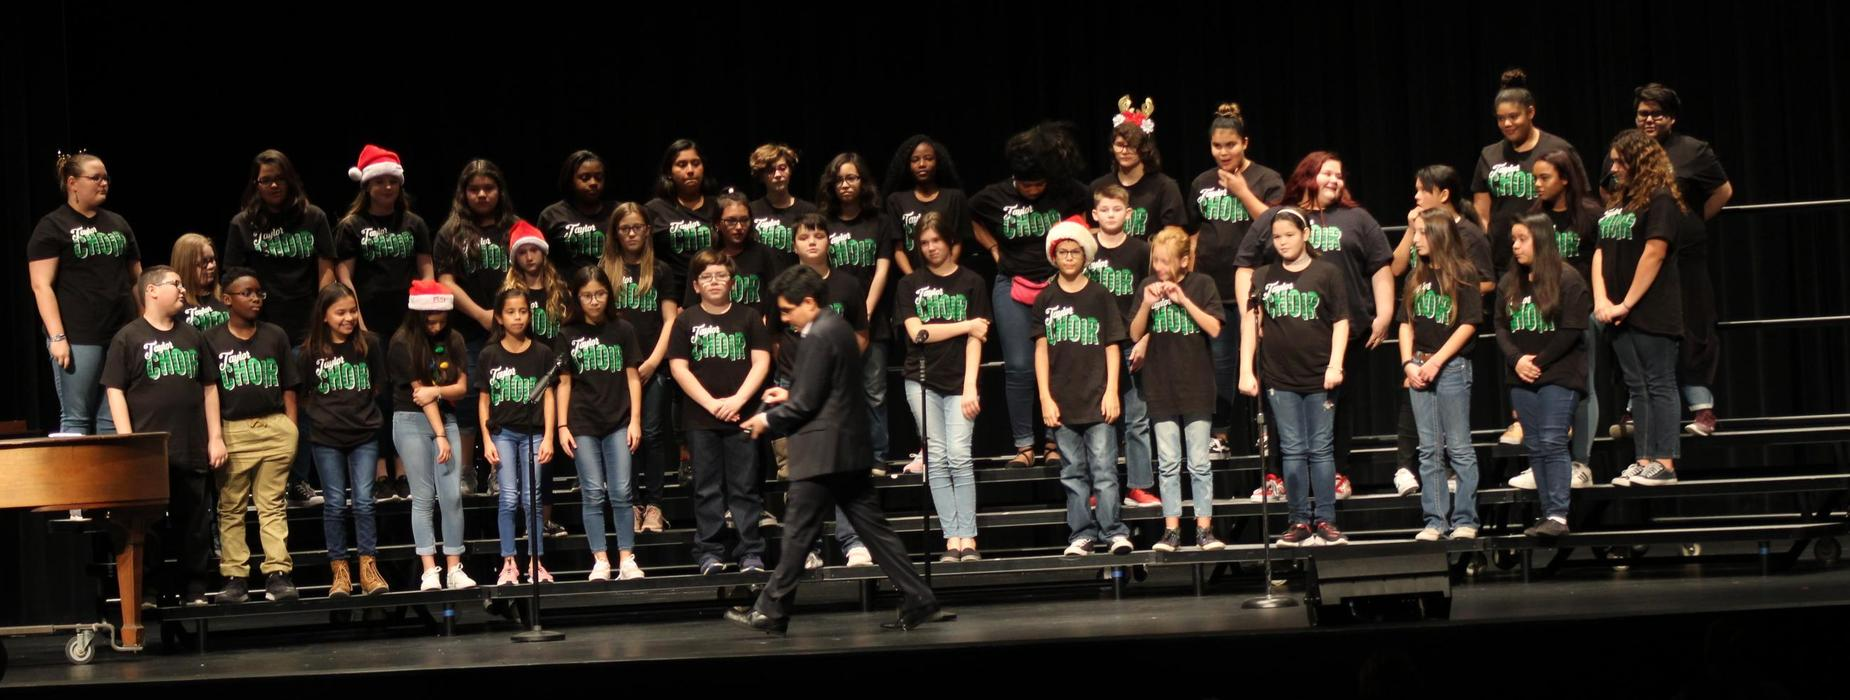 Choir Holiday Concert